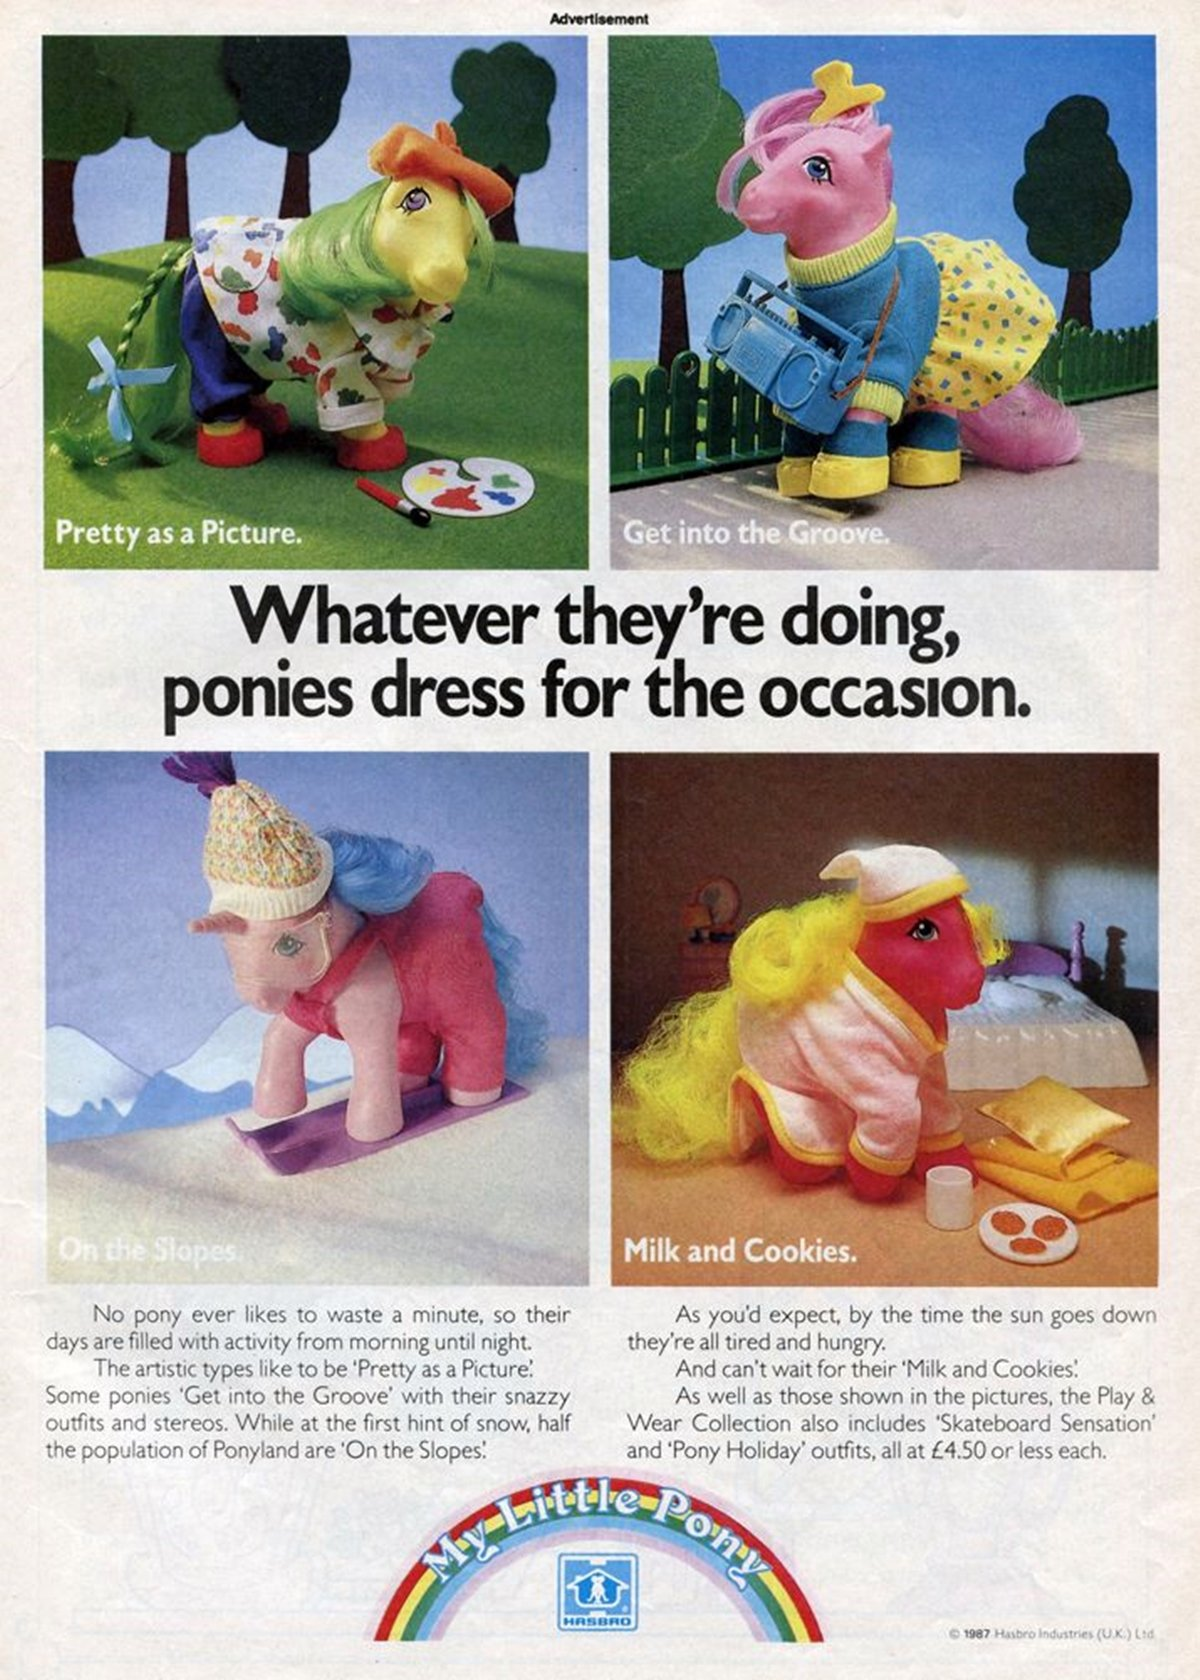 8 10 16 Retro Toy Adverts That Will Fill You With Nostalgia